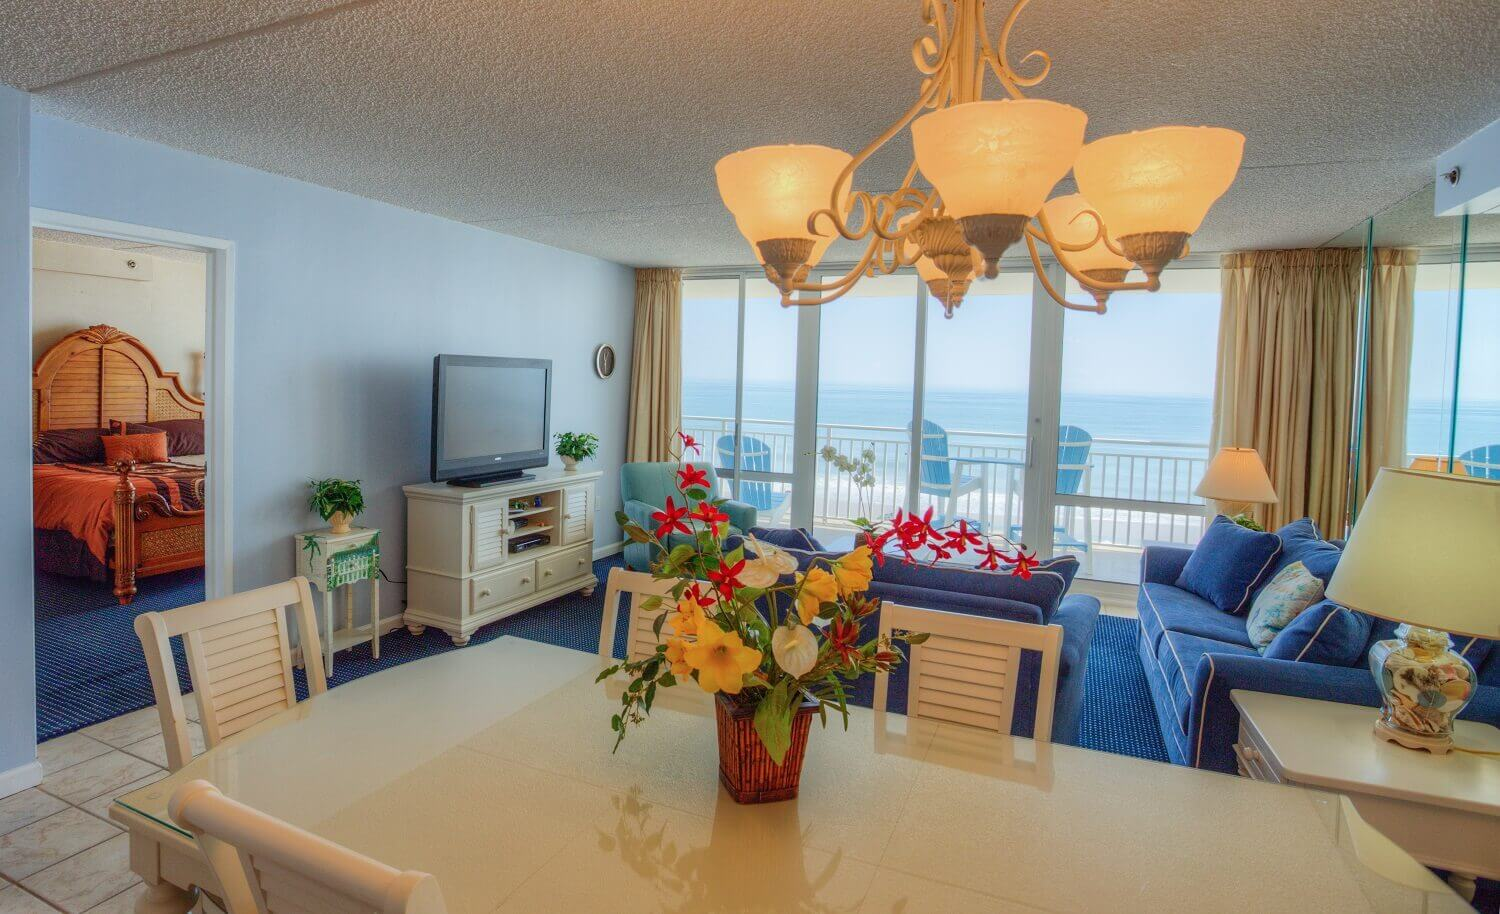 Carousel Hotel Ocean City MD Oceanfront Hotel & Condos